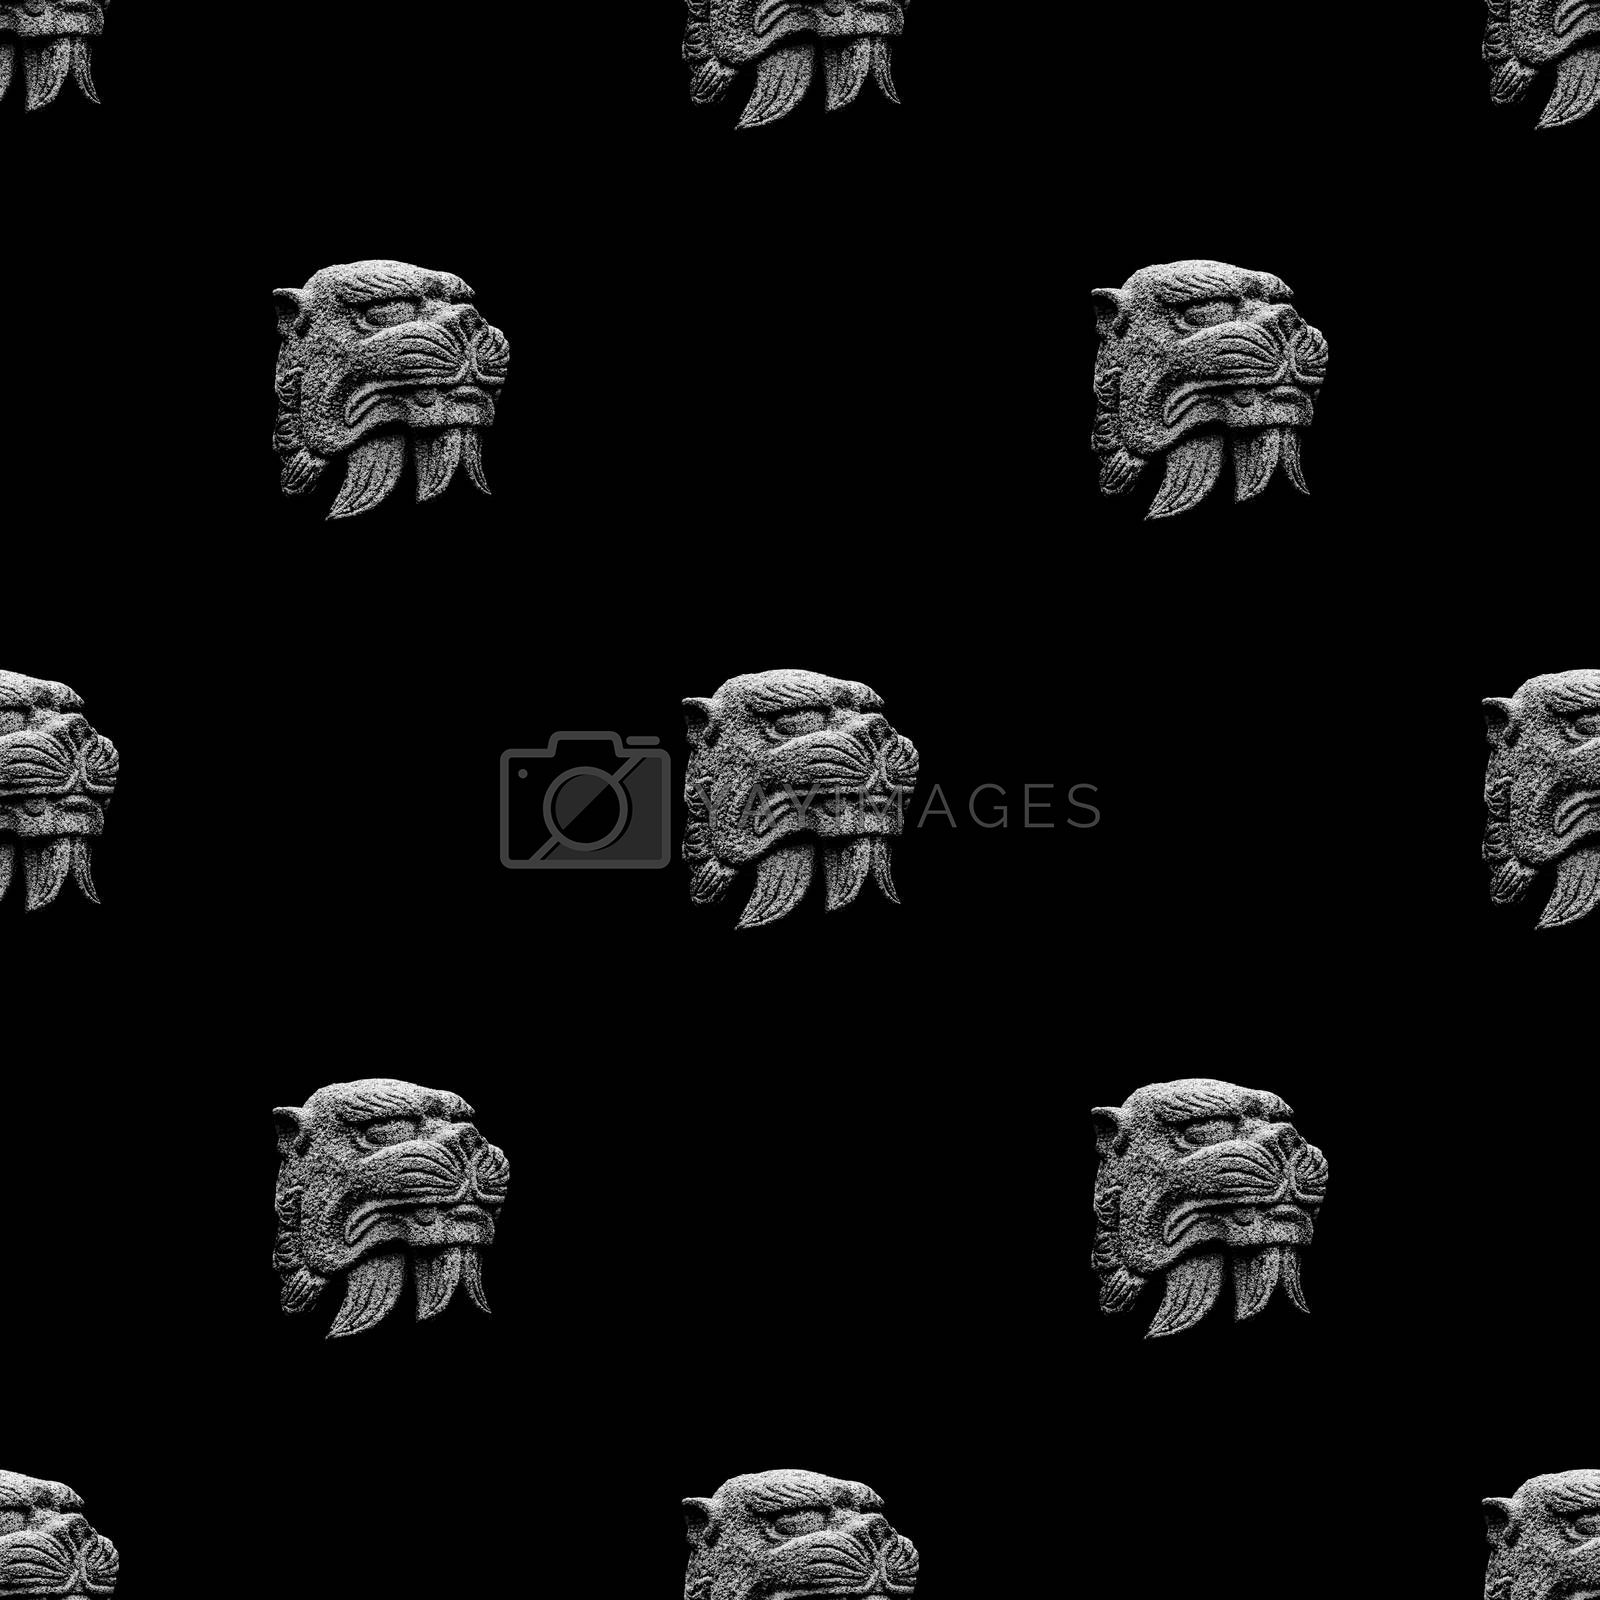 Conversational seamless pattern design mythological feline head stone sculpture motif in black and white colors